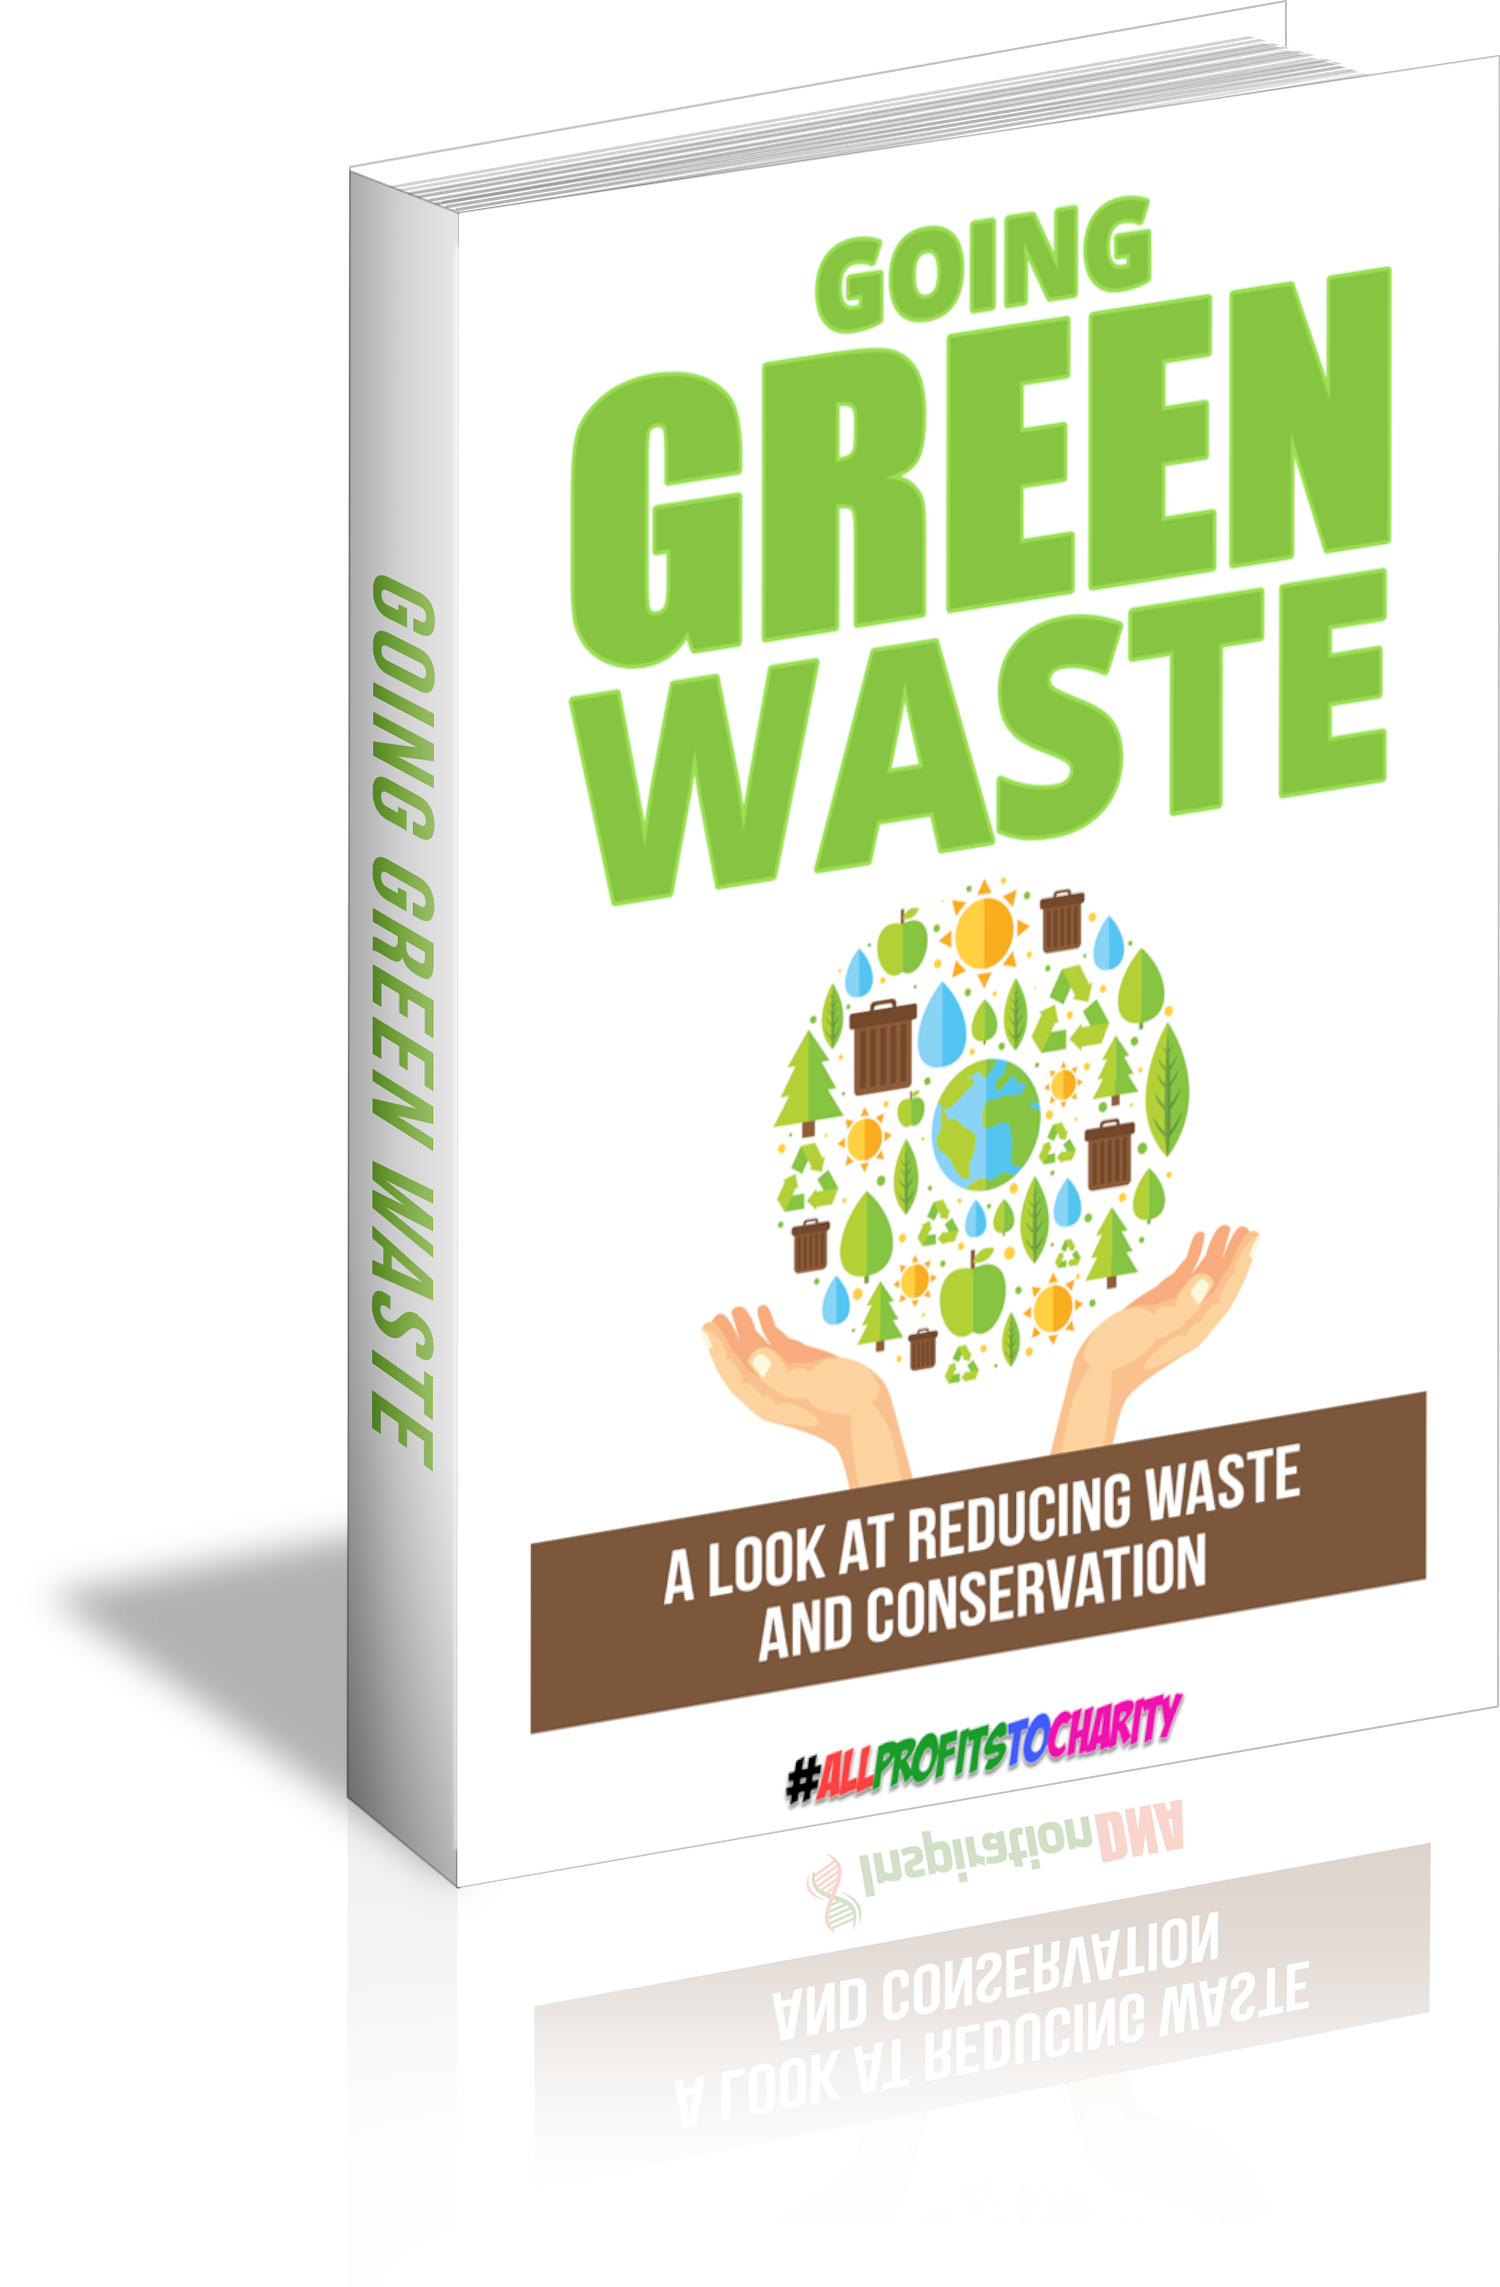 Going Green waste cover